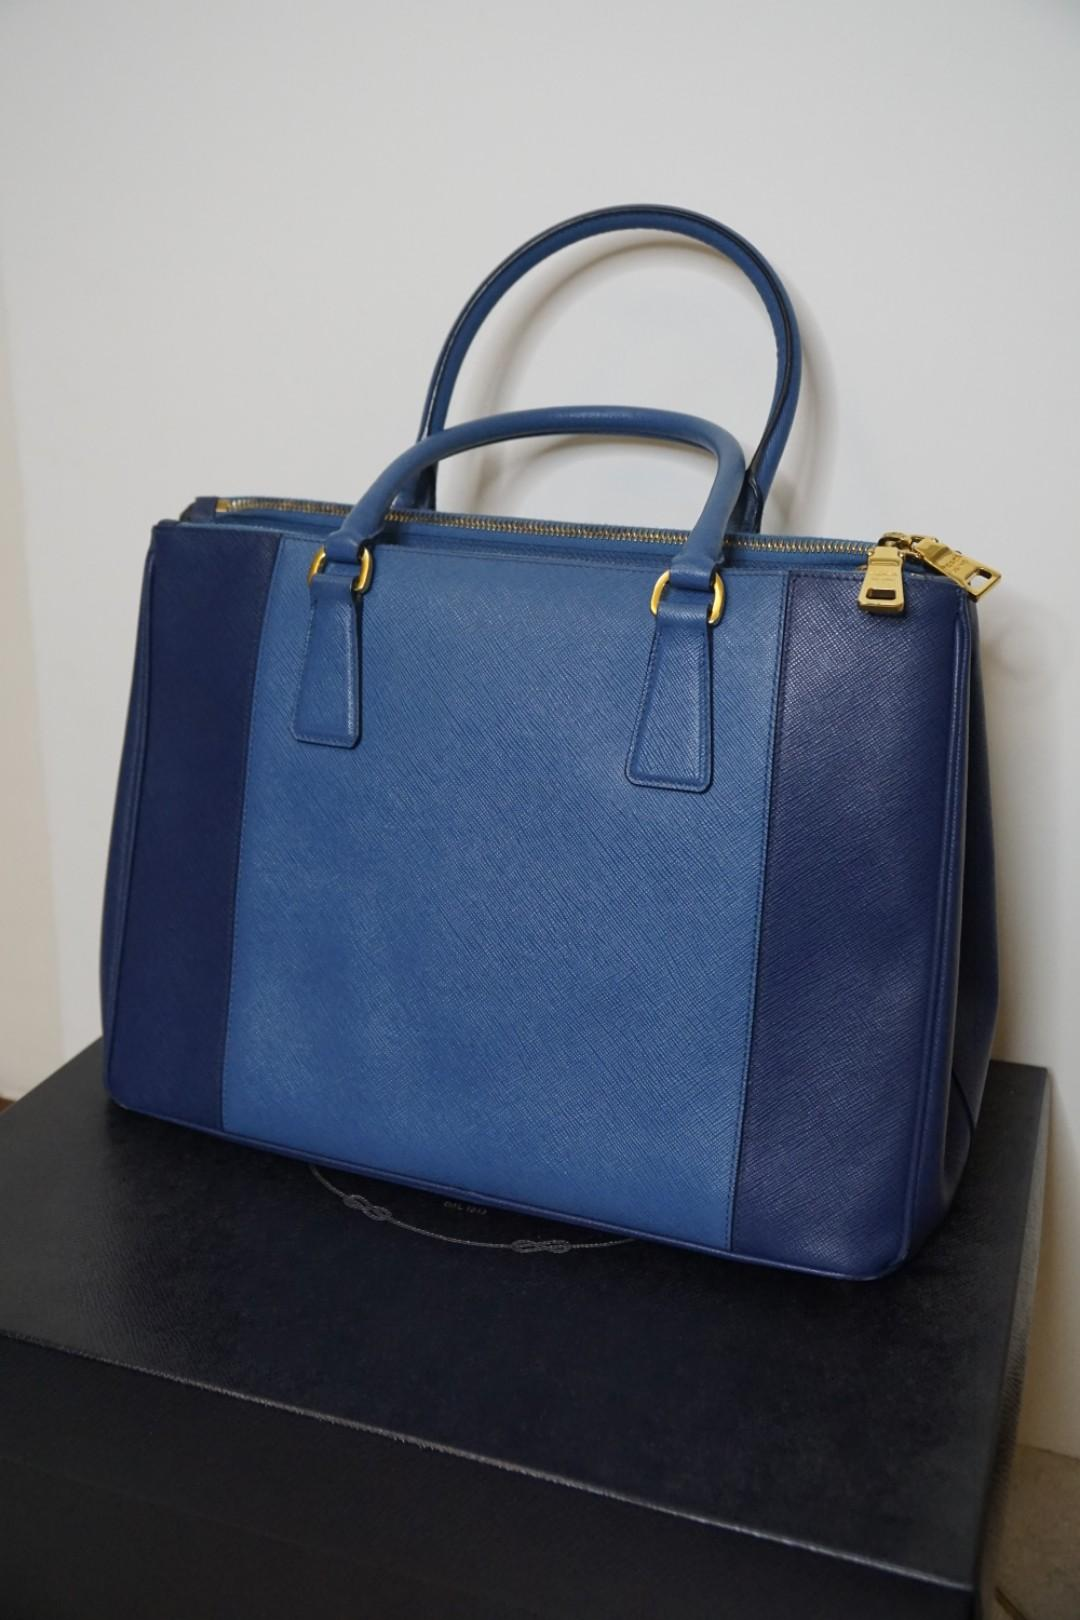 Prada Saffiano Bicolor Medium Double Zip Tote (Bluette Cobalto)